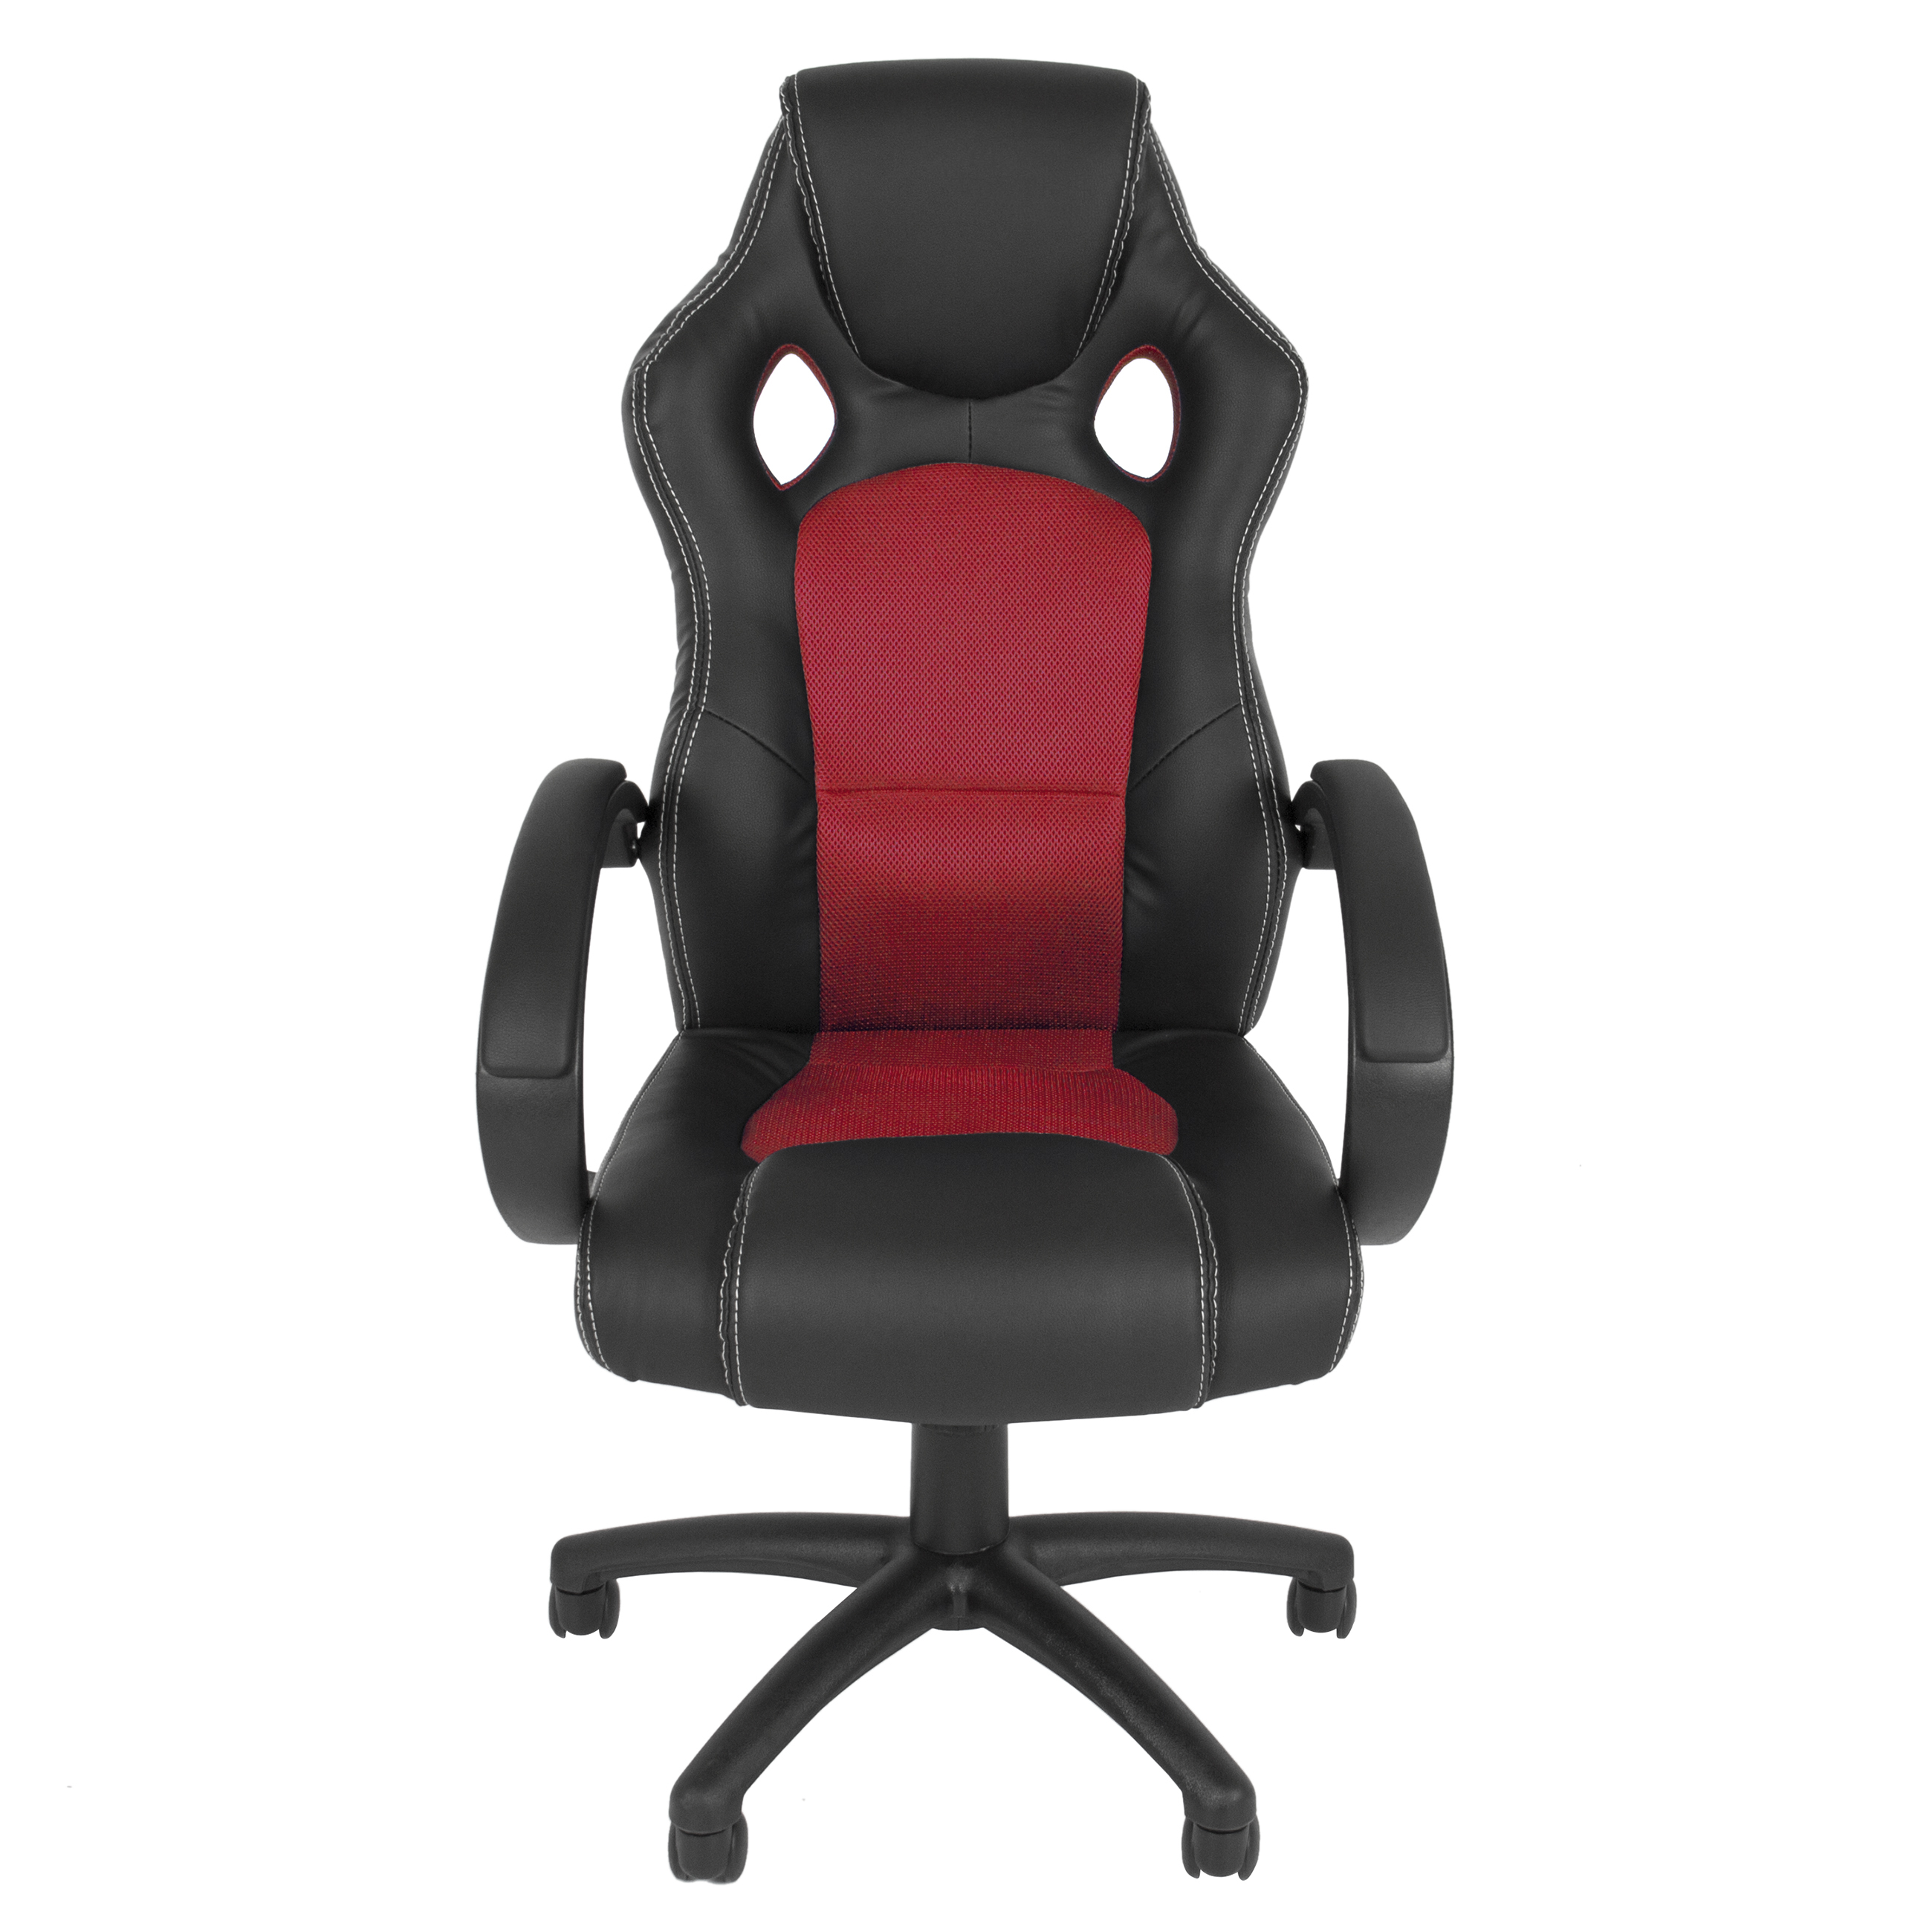 Executive Racing Gaming Office Chair PU Leather Swivel Computer Desk Seat High-Back (Red) - Walmart.com  sc 1 st  Walmart & Executive Racing Gaming Office Chair PU Leather Swivel Computer ... islam-shia.org